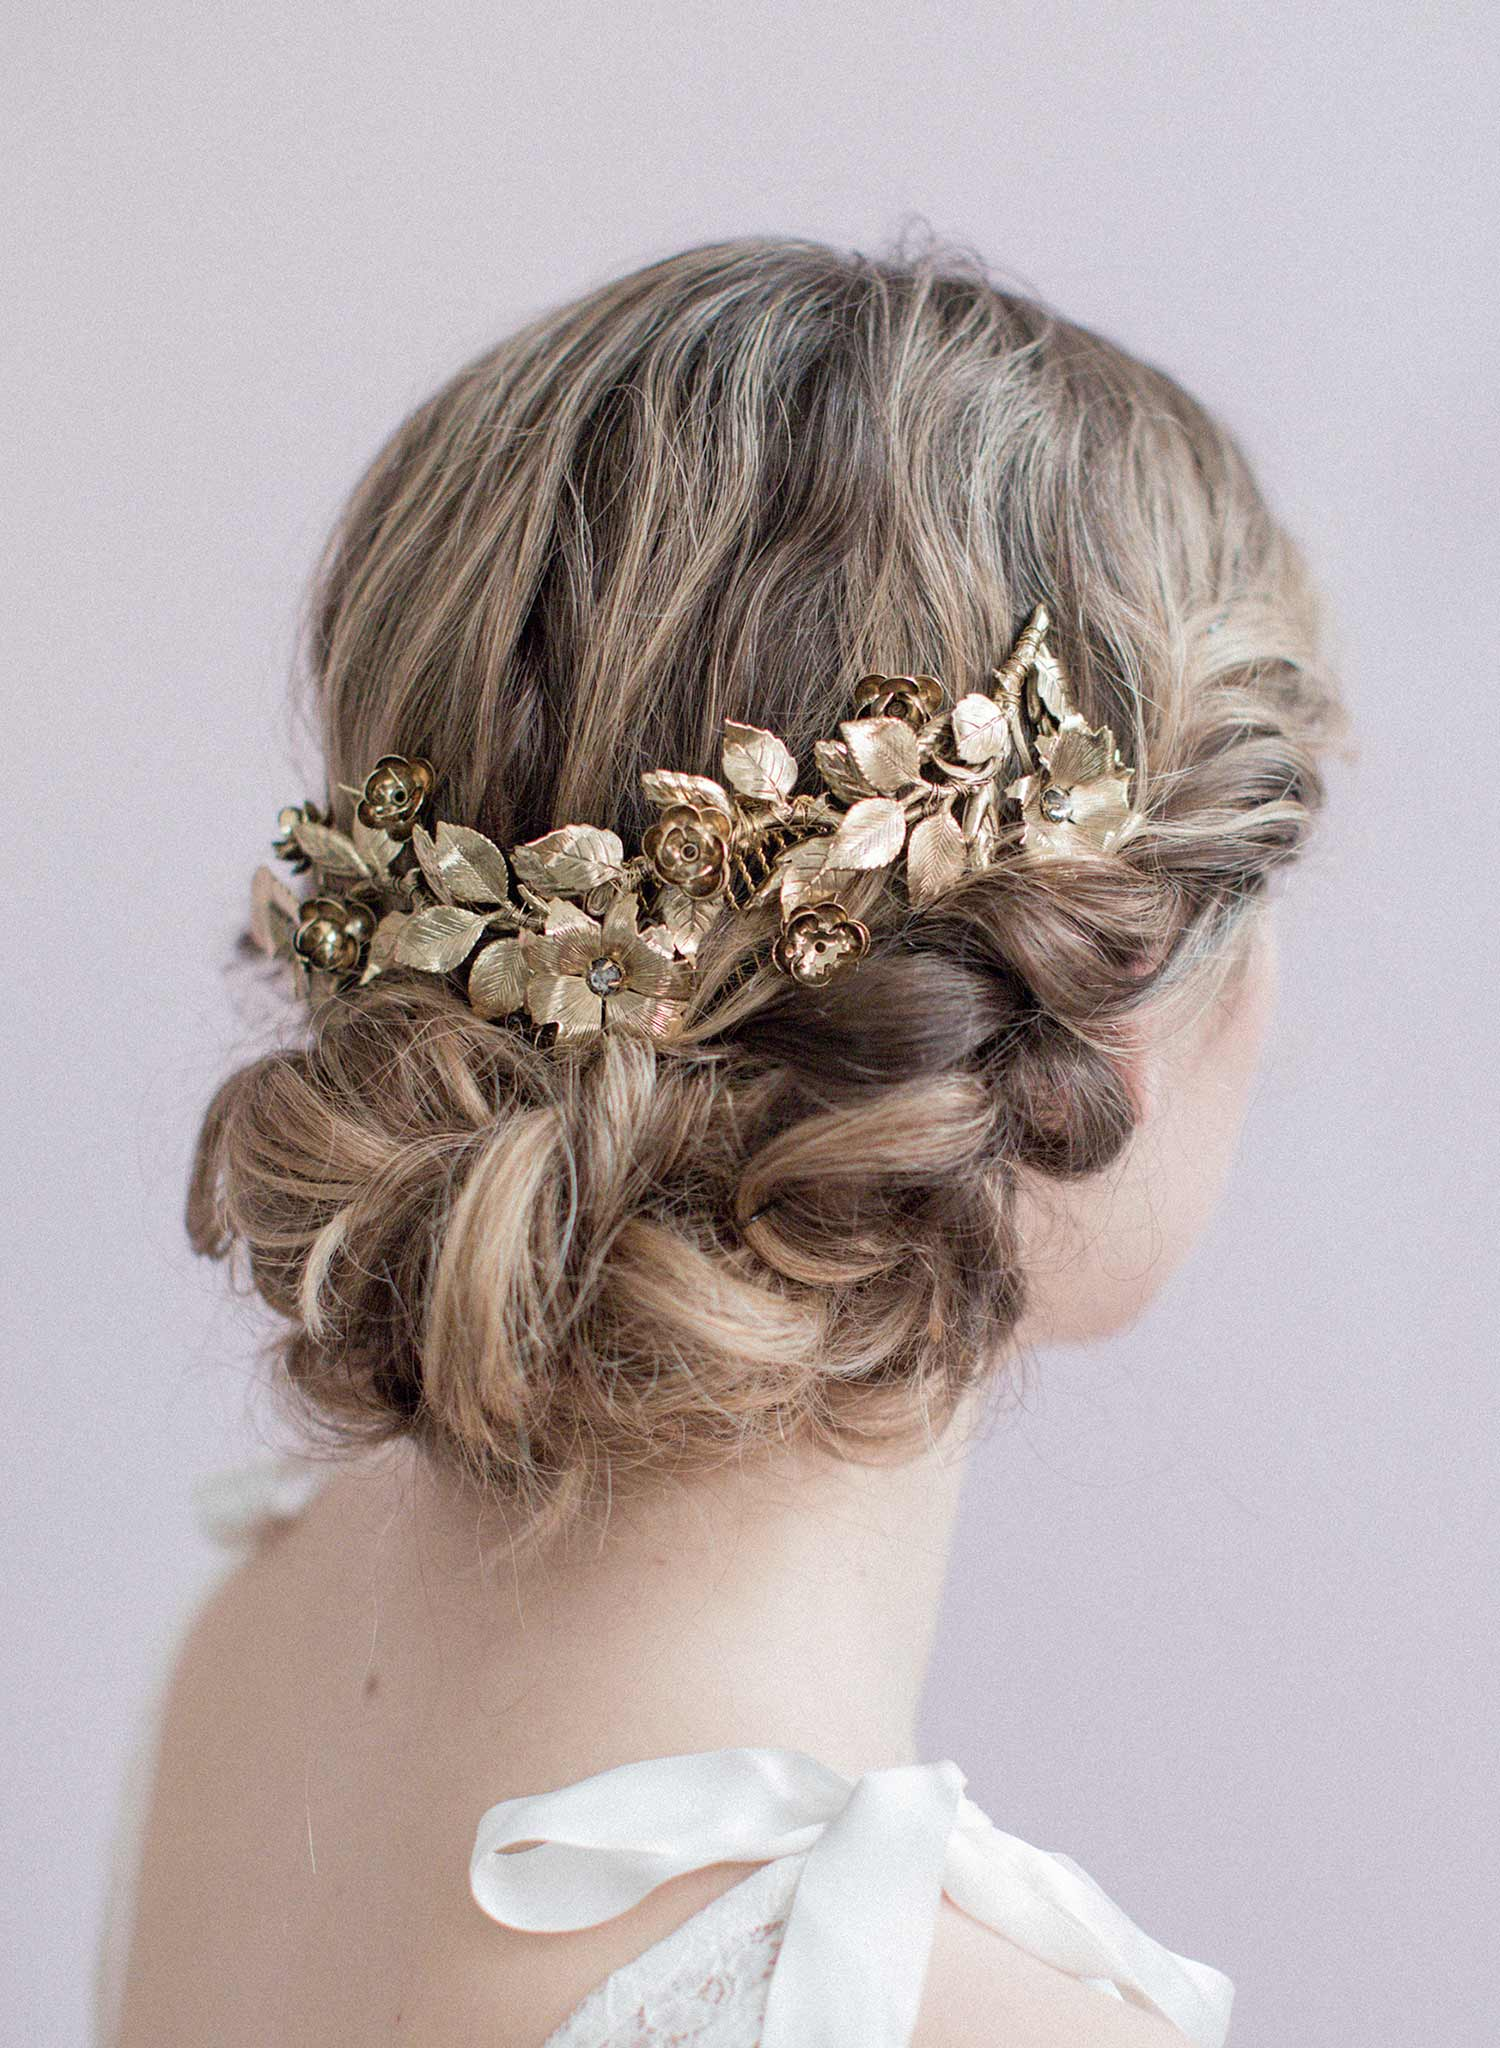 Antique gold flower wreath - Style #826